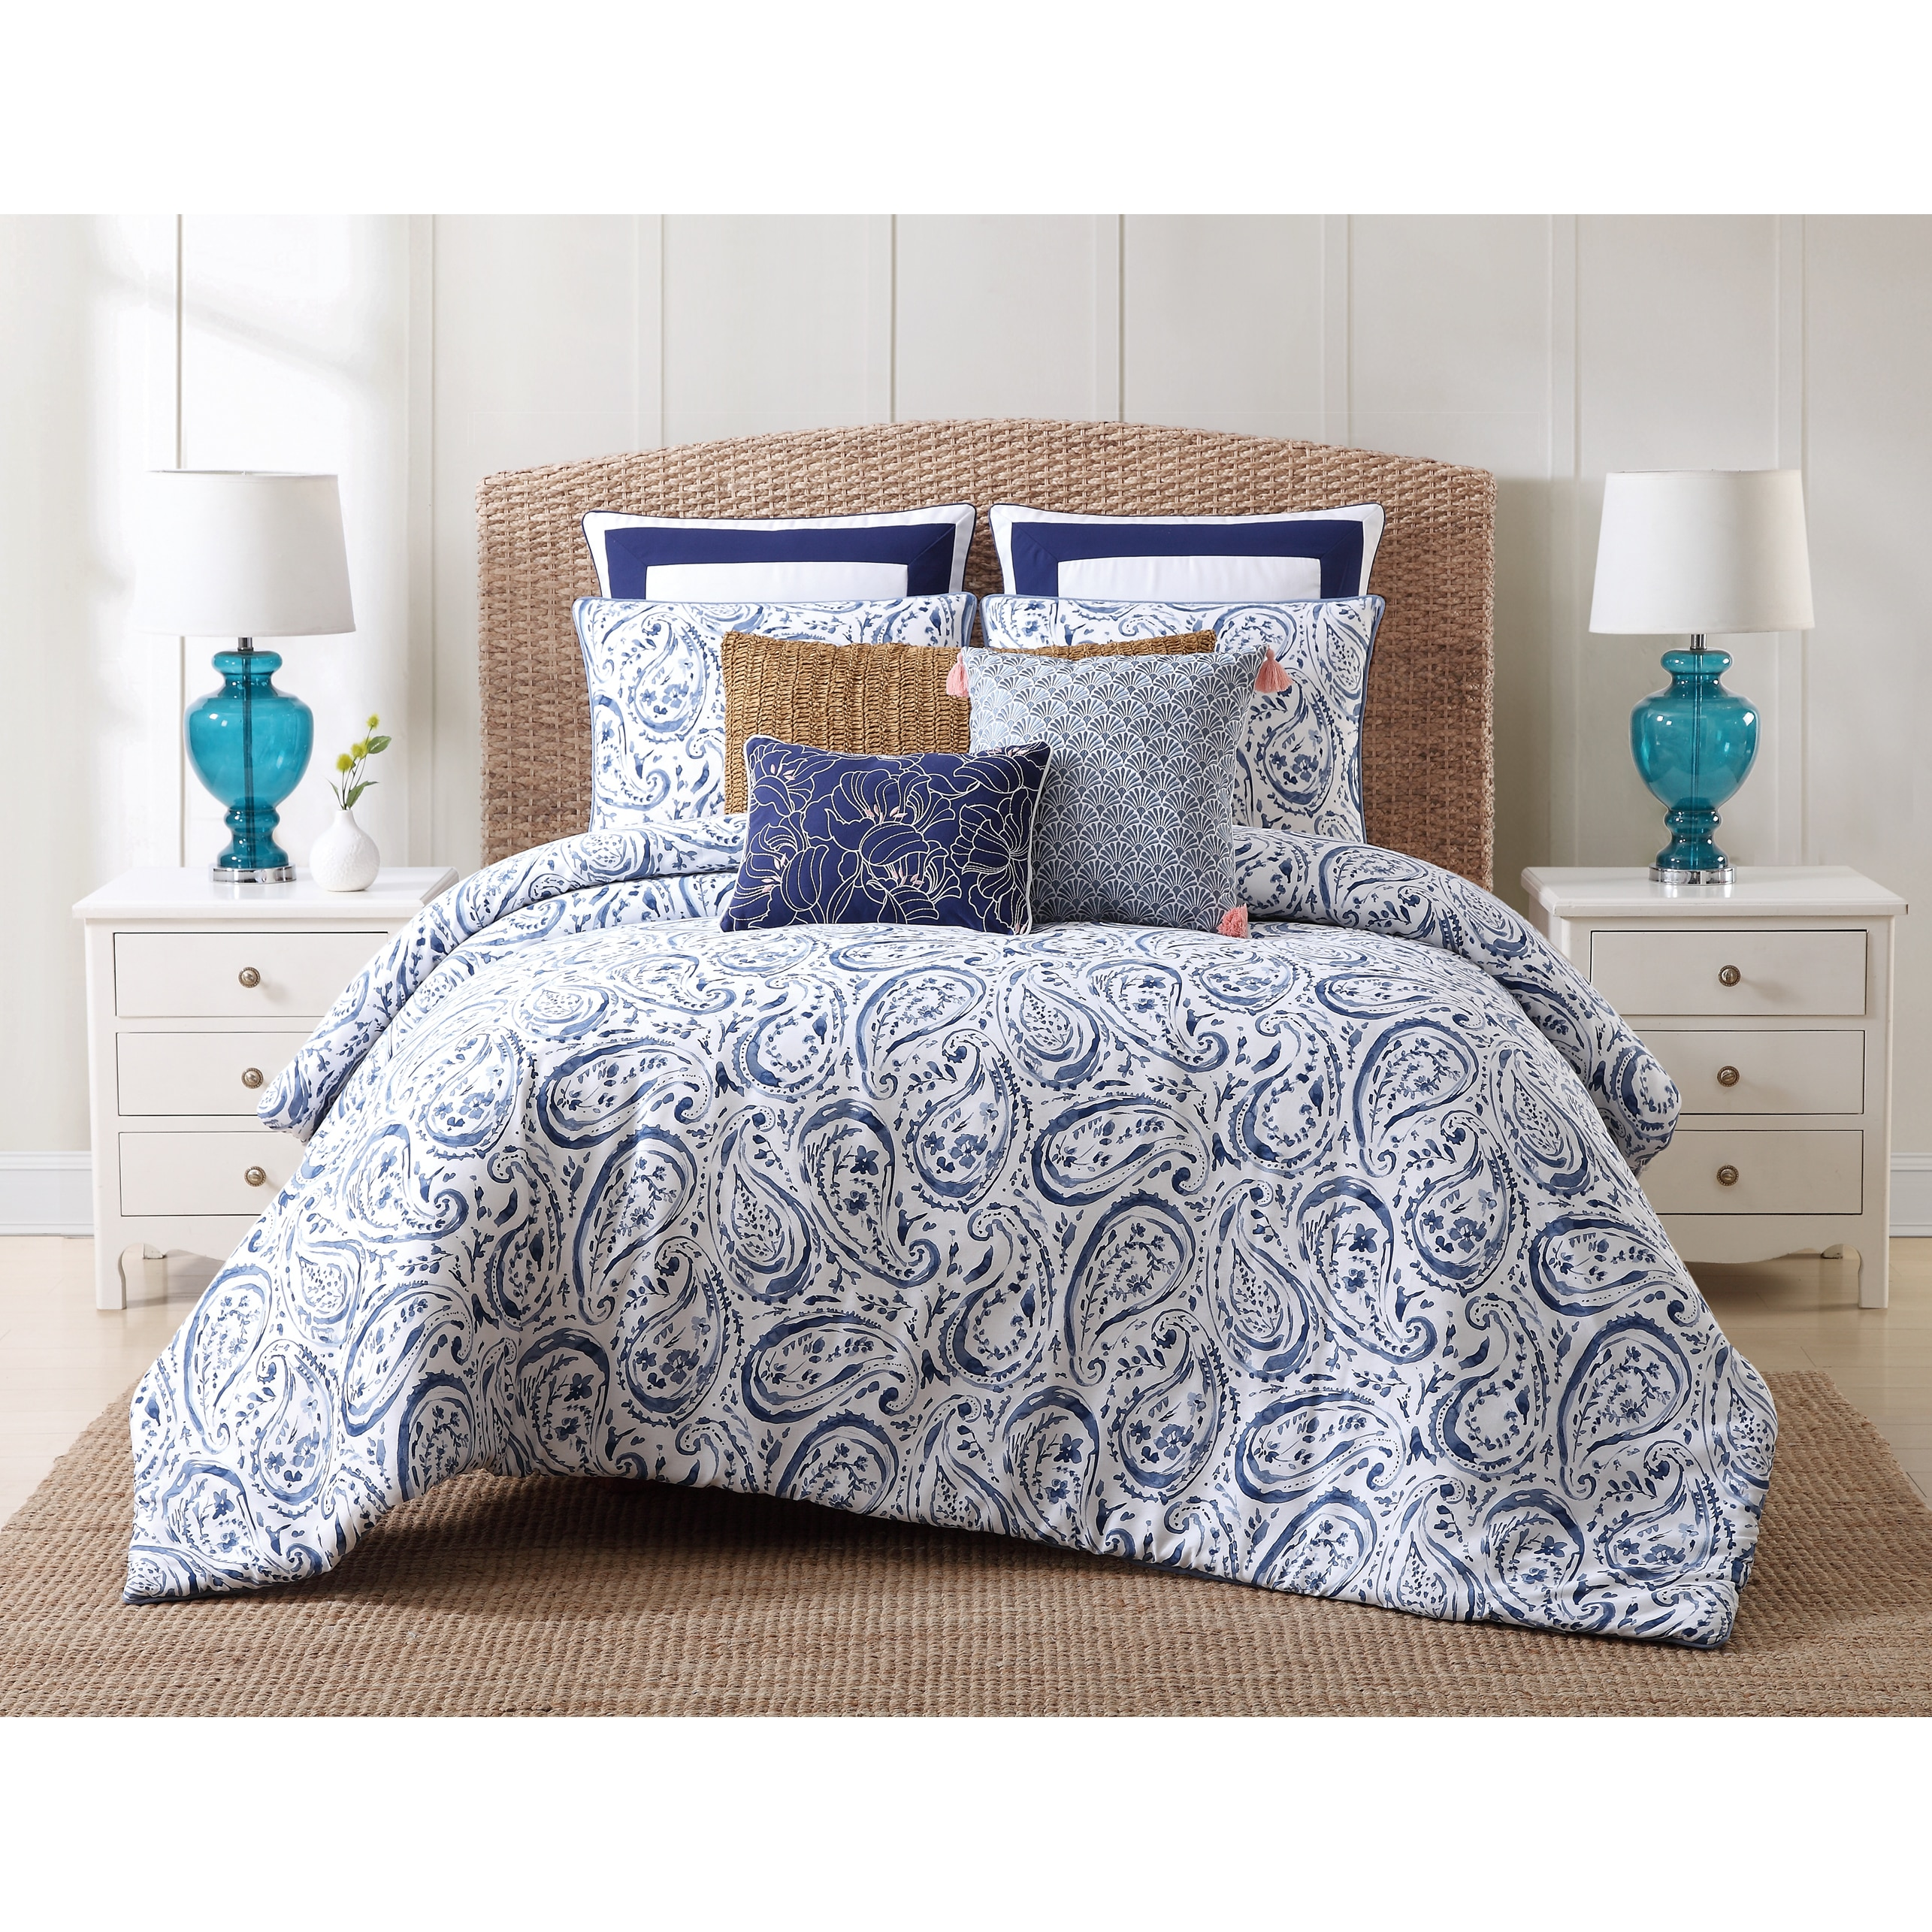 Duvet And Comforter Sets Oceanfront Resort Indienne Paisley Cotton Comforter Set